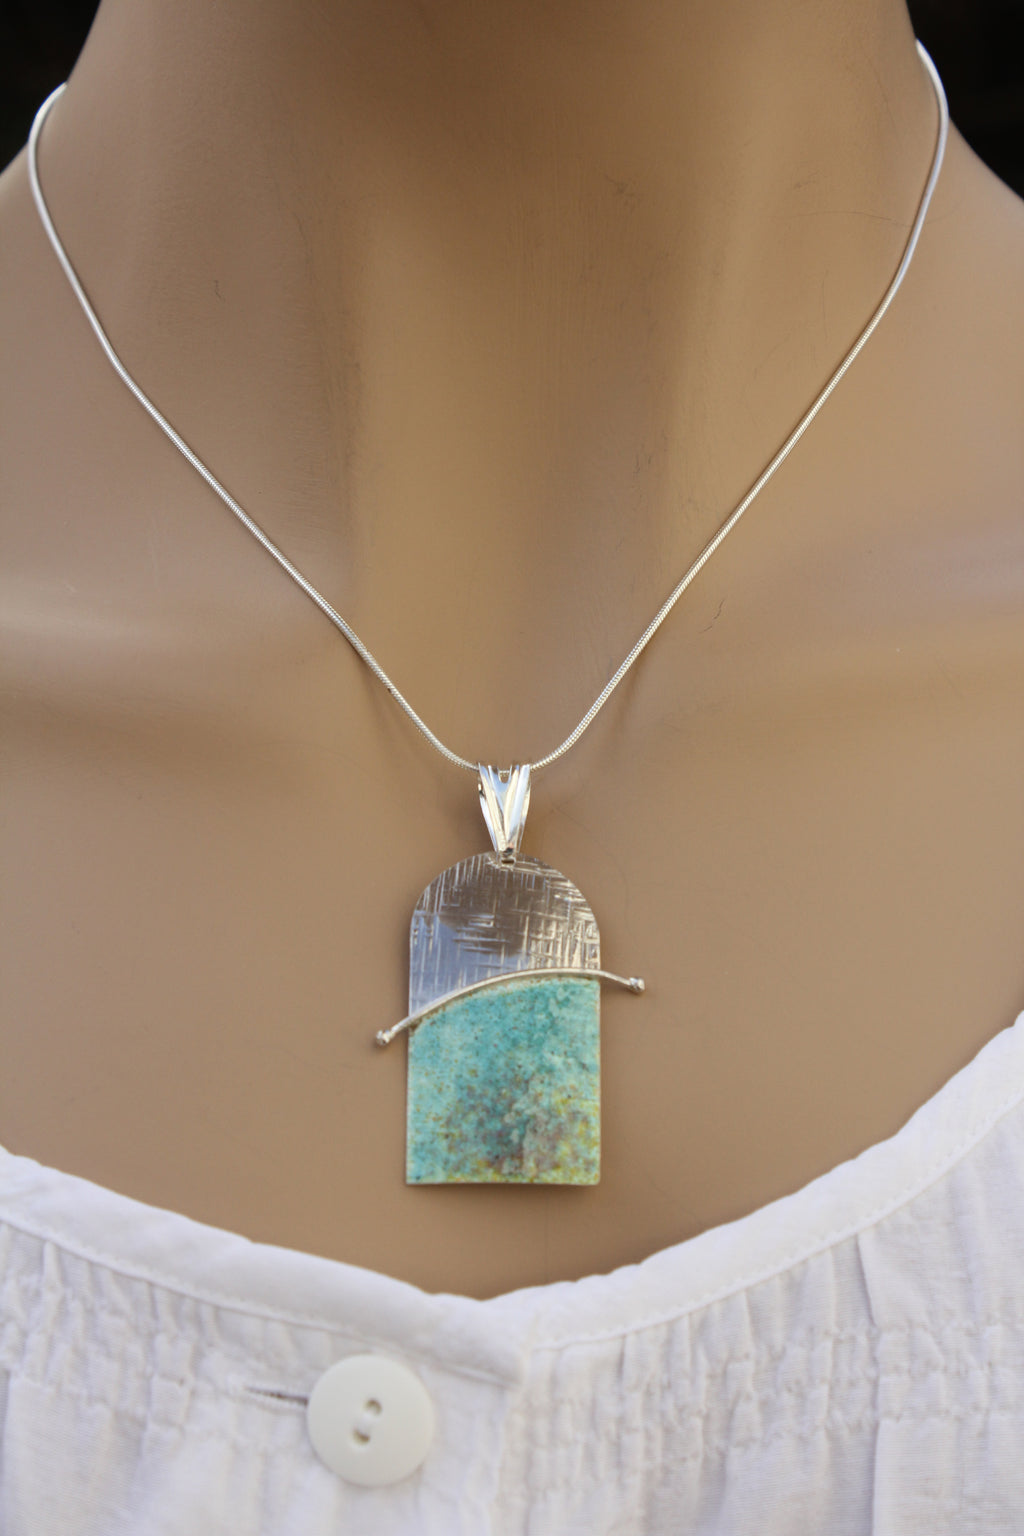 Turquoise, Yellow, Green Enamelled Sterling Silver Pendant by Robert Spotten